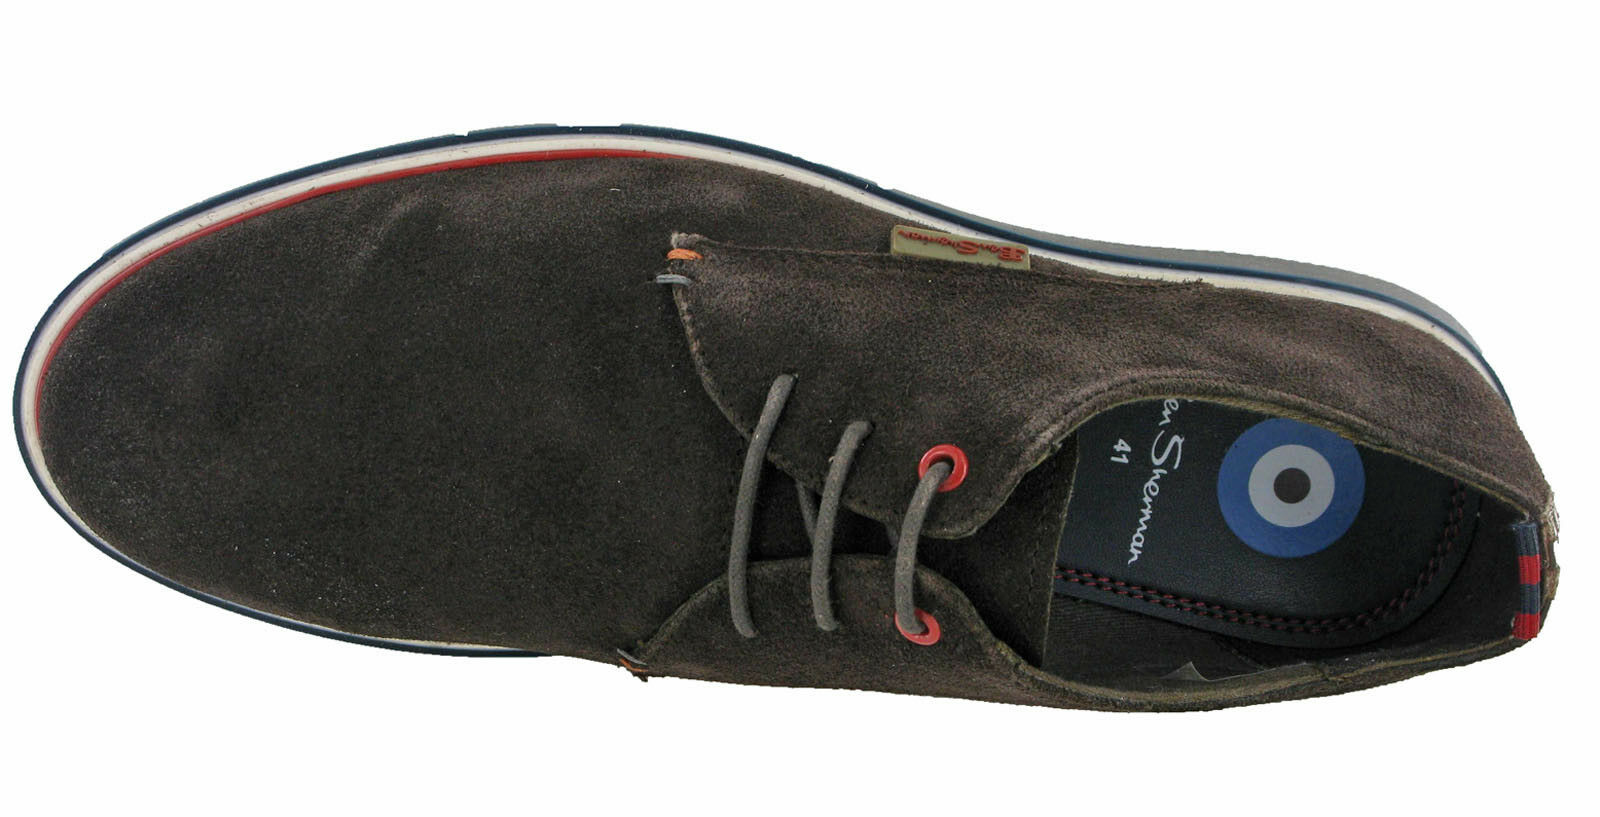 Ben Sherman Casual Schuhes Suede Leder Work Trainers  Uomo Flat Fashion Trainers Work Lace b3d7d7